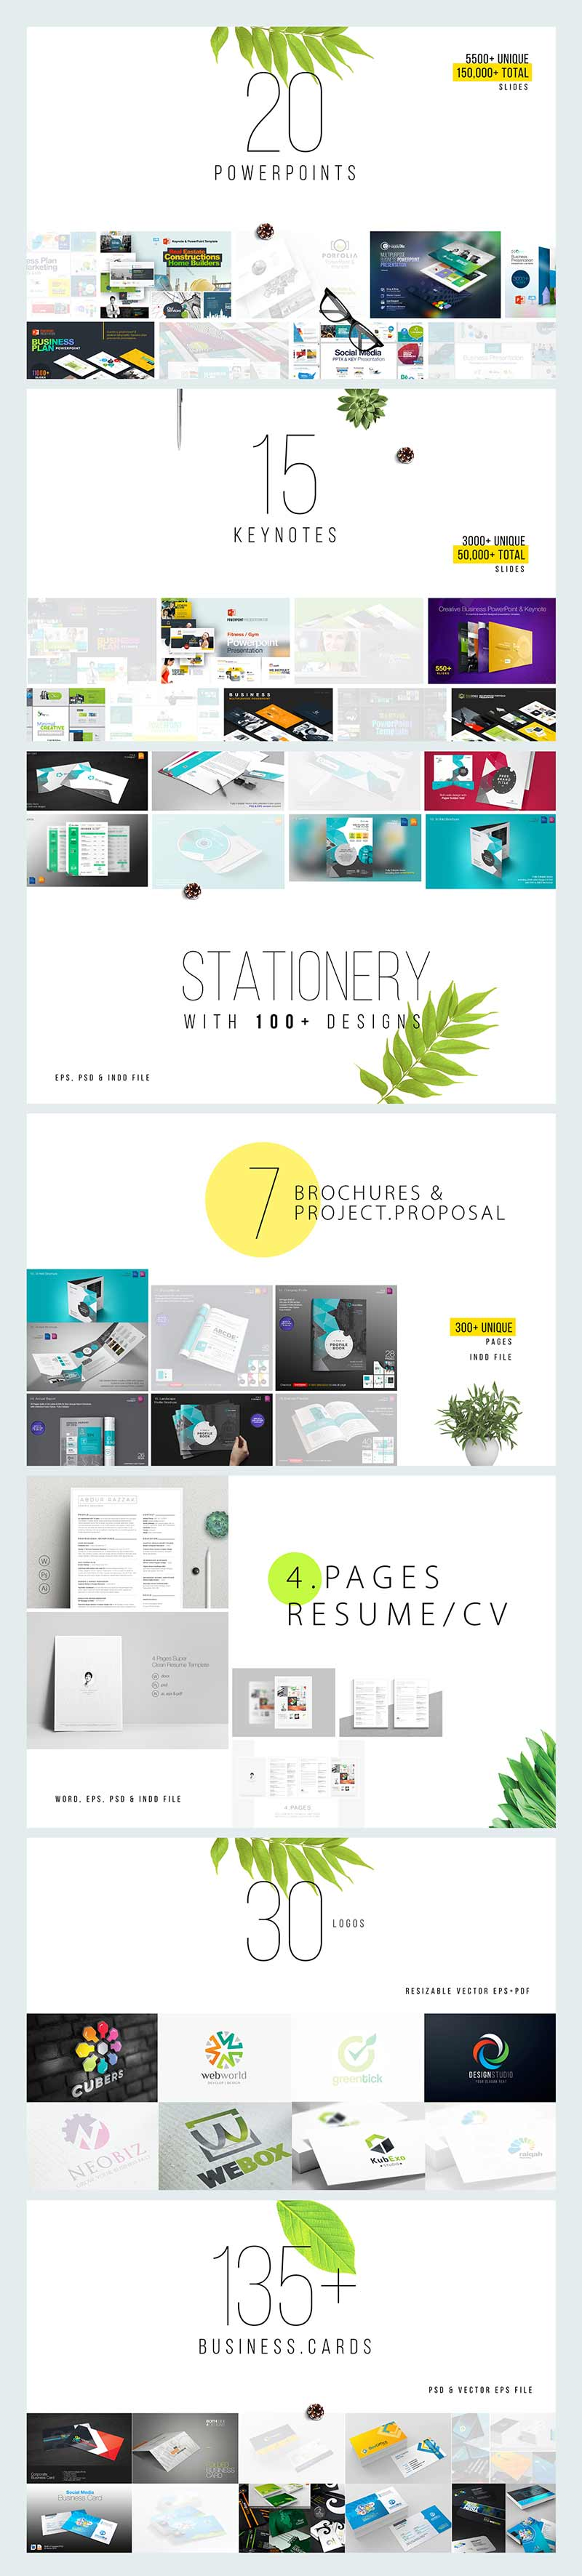 Entire Shop - Business Presentation & Print Bundle | Preview - 2 Summary